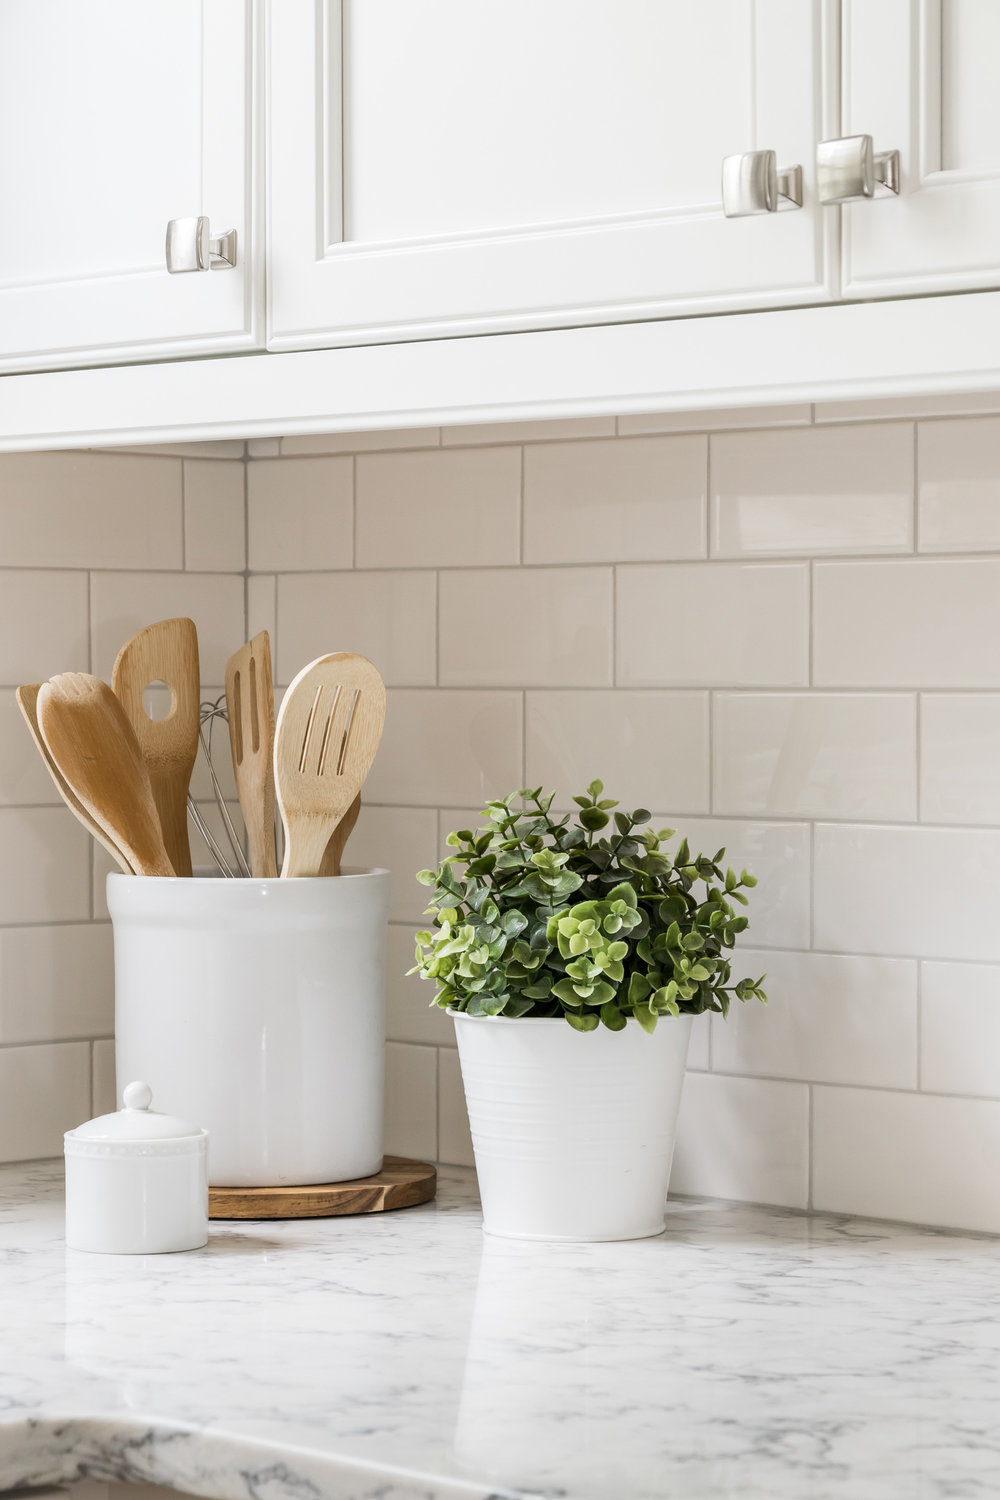 Marble Countertop with White Cabinets